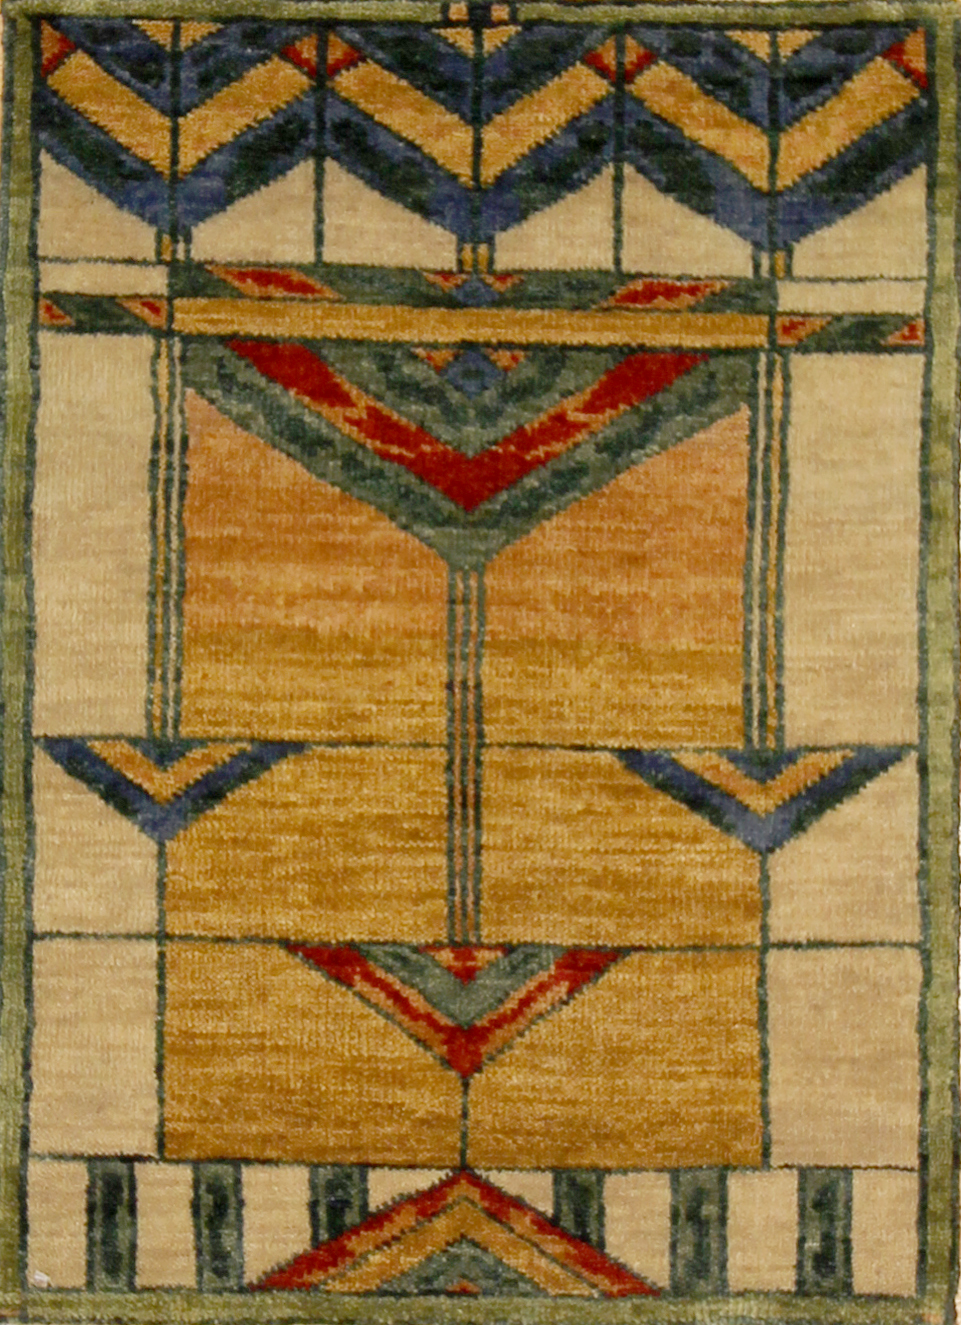 920 Arts and Crafts Sample, India, 2' x 2'11""